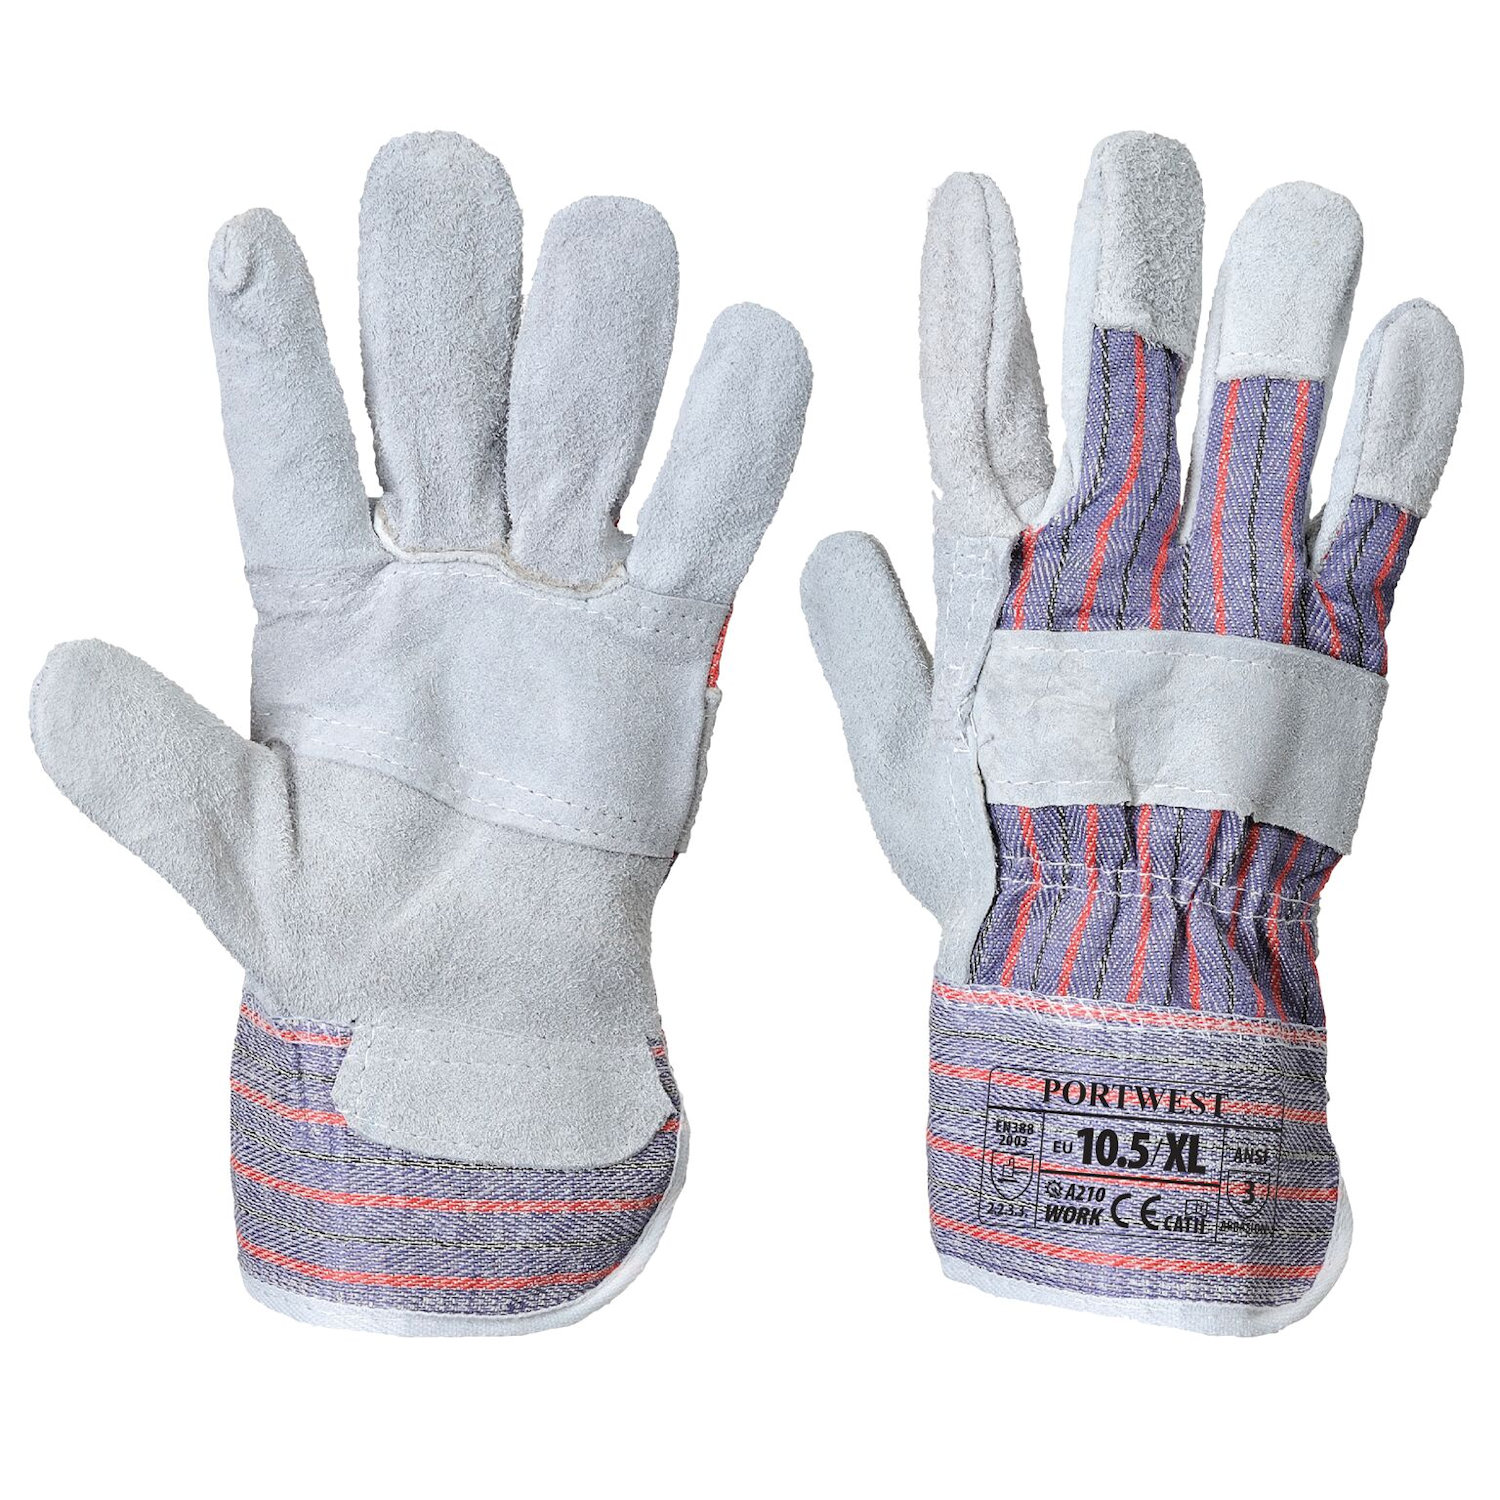 portwest a210 gloves